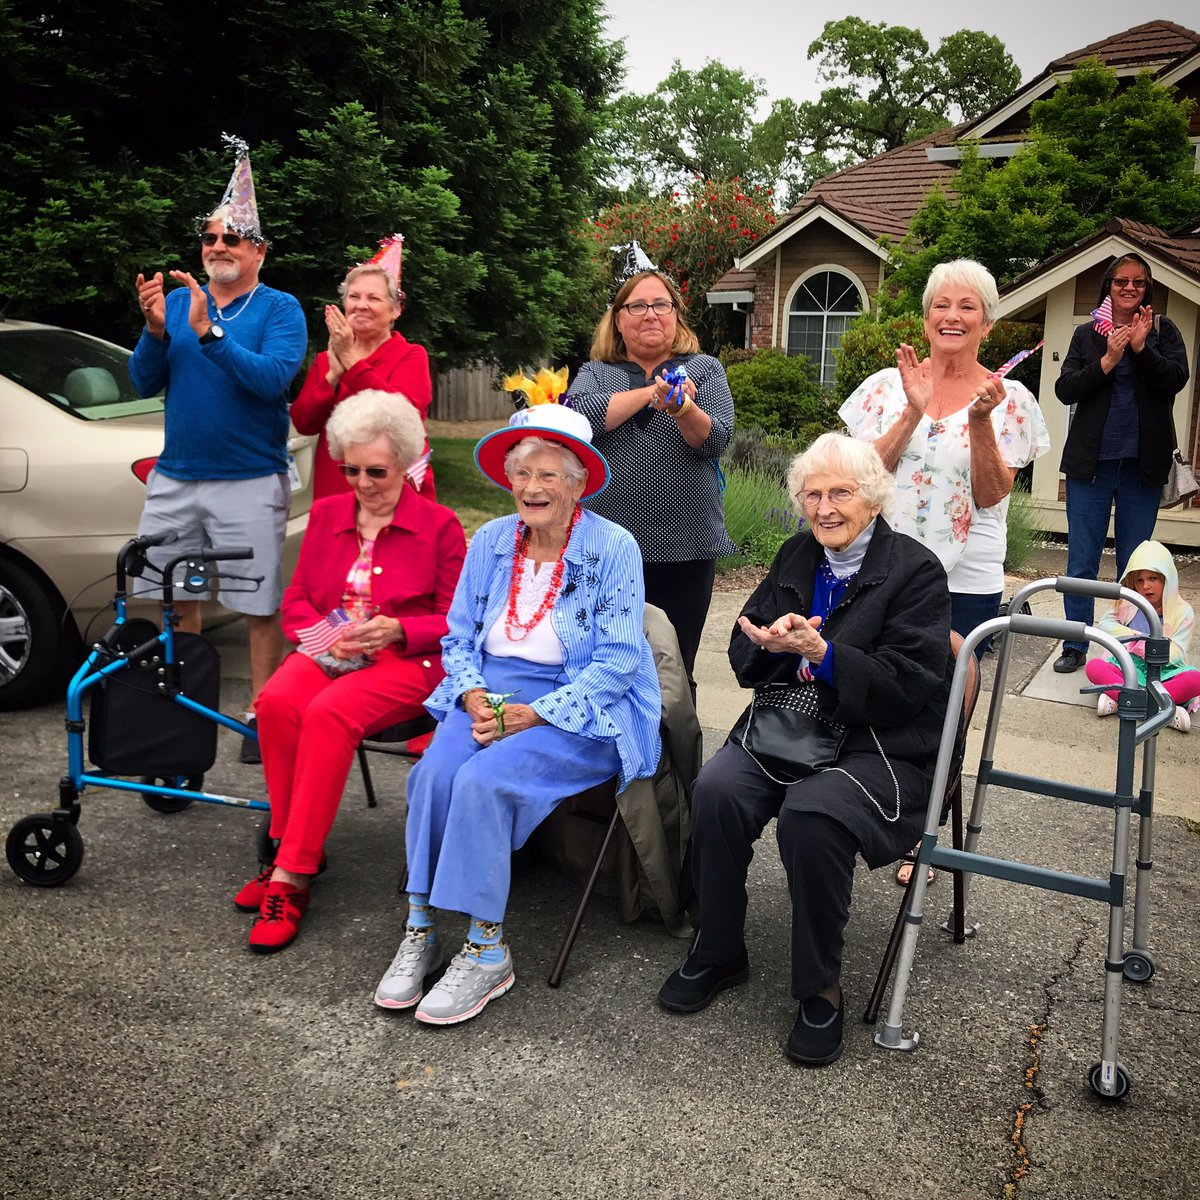 BEST. STORY. EVER. We just covered the event of the century! Well, of Millie Forry's century, at least. This Roseville woman turns 100 today, and all she wanted for her birthday....was a parade. And boy, did she get one! 🥳🎉👵🏼🎂🎈